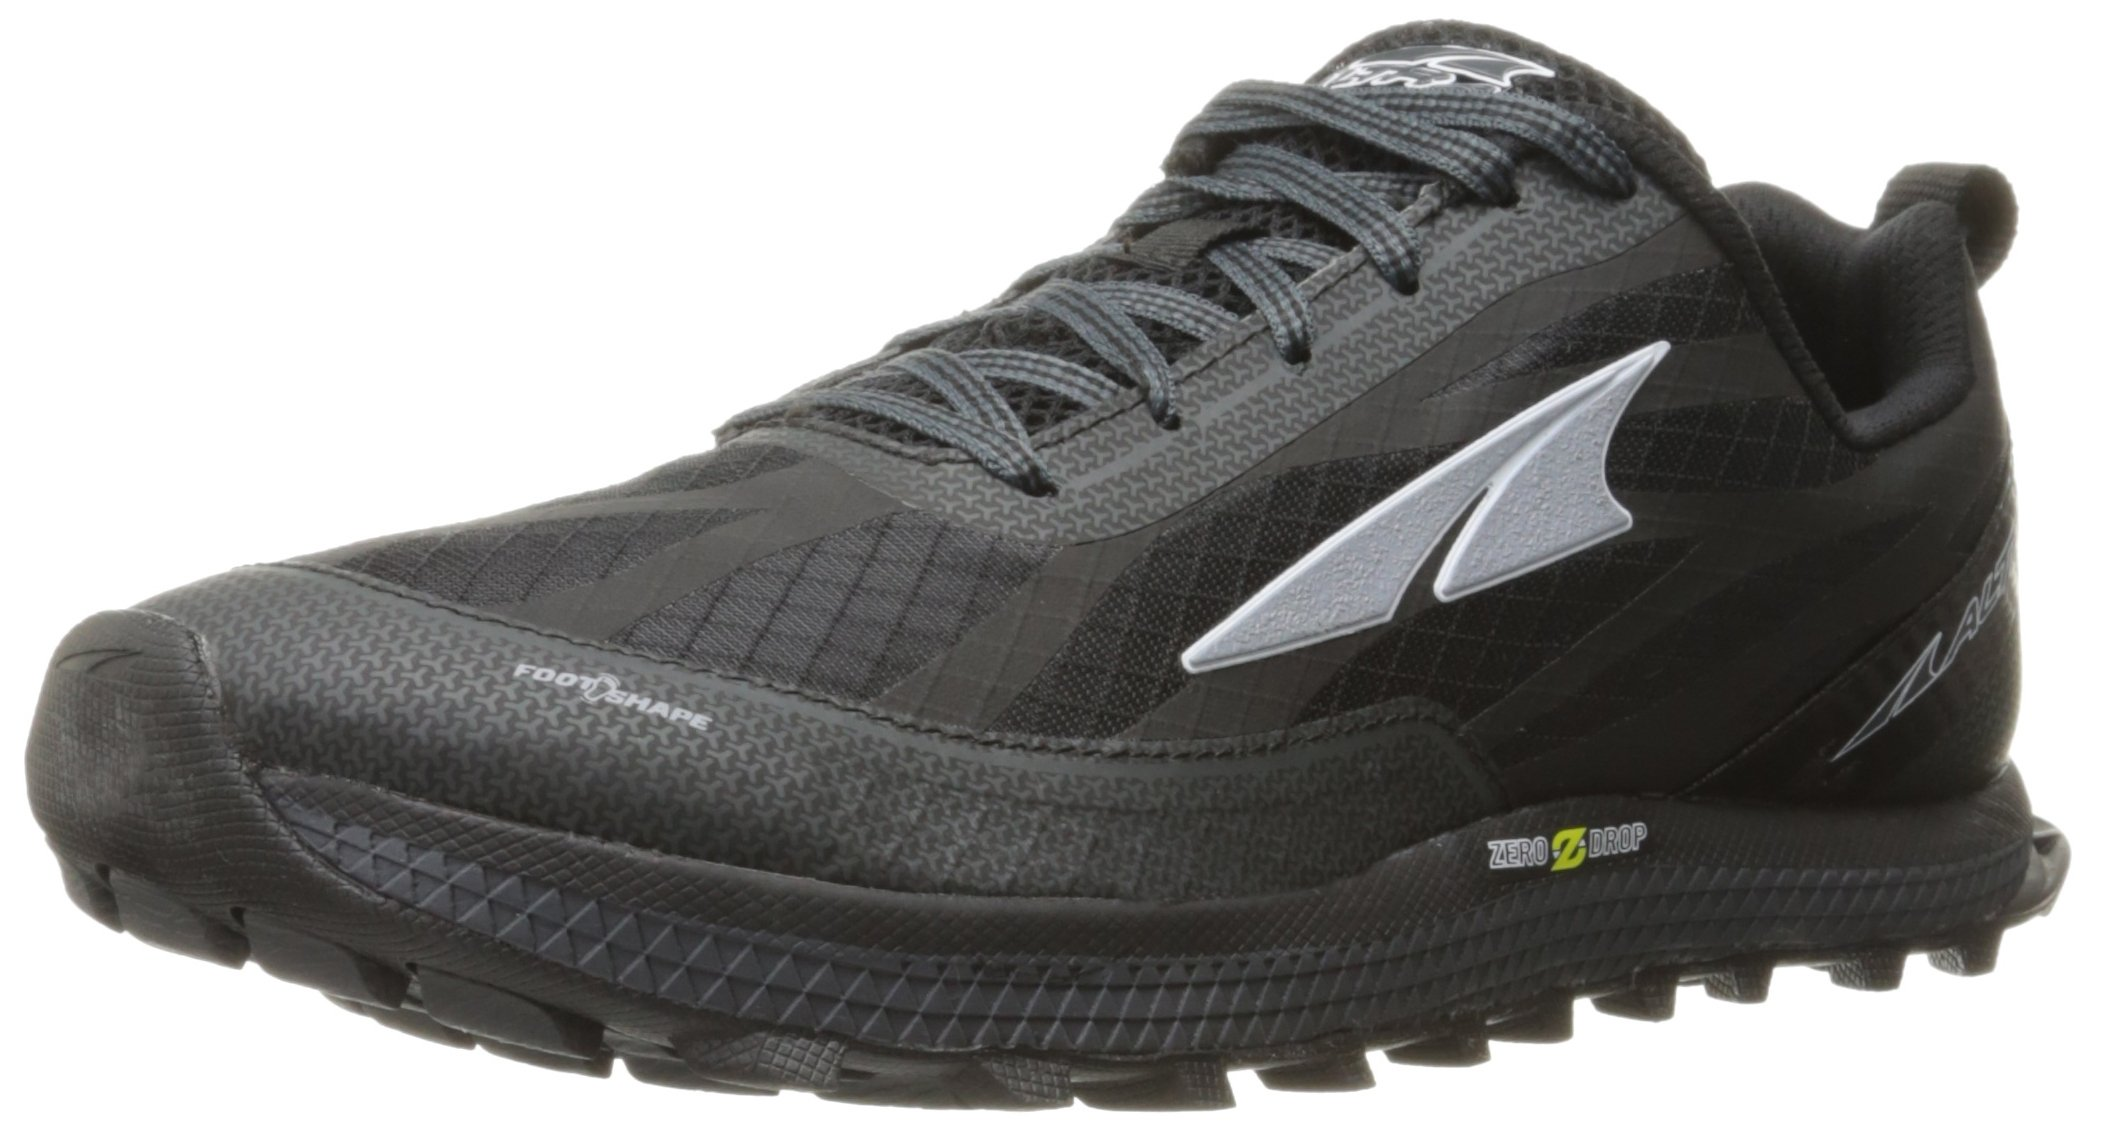 Altra Men's Superior 3 Running Shoe, Black/Yellow, 9 M US